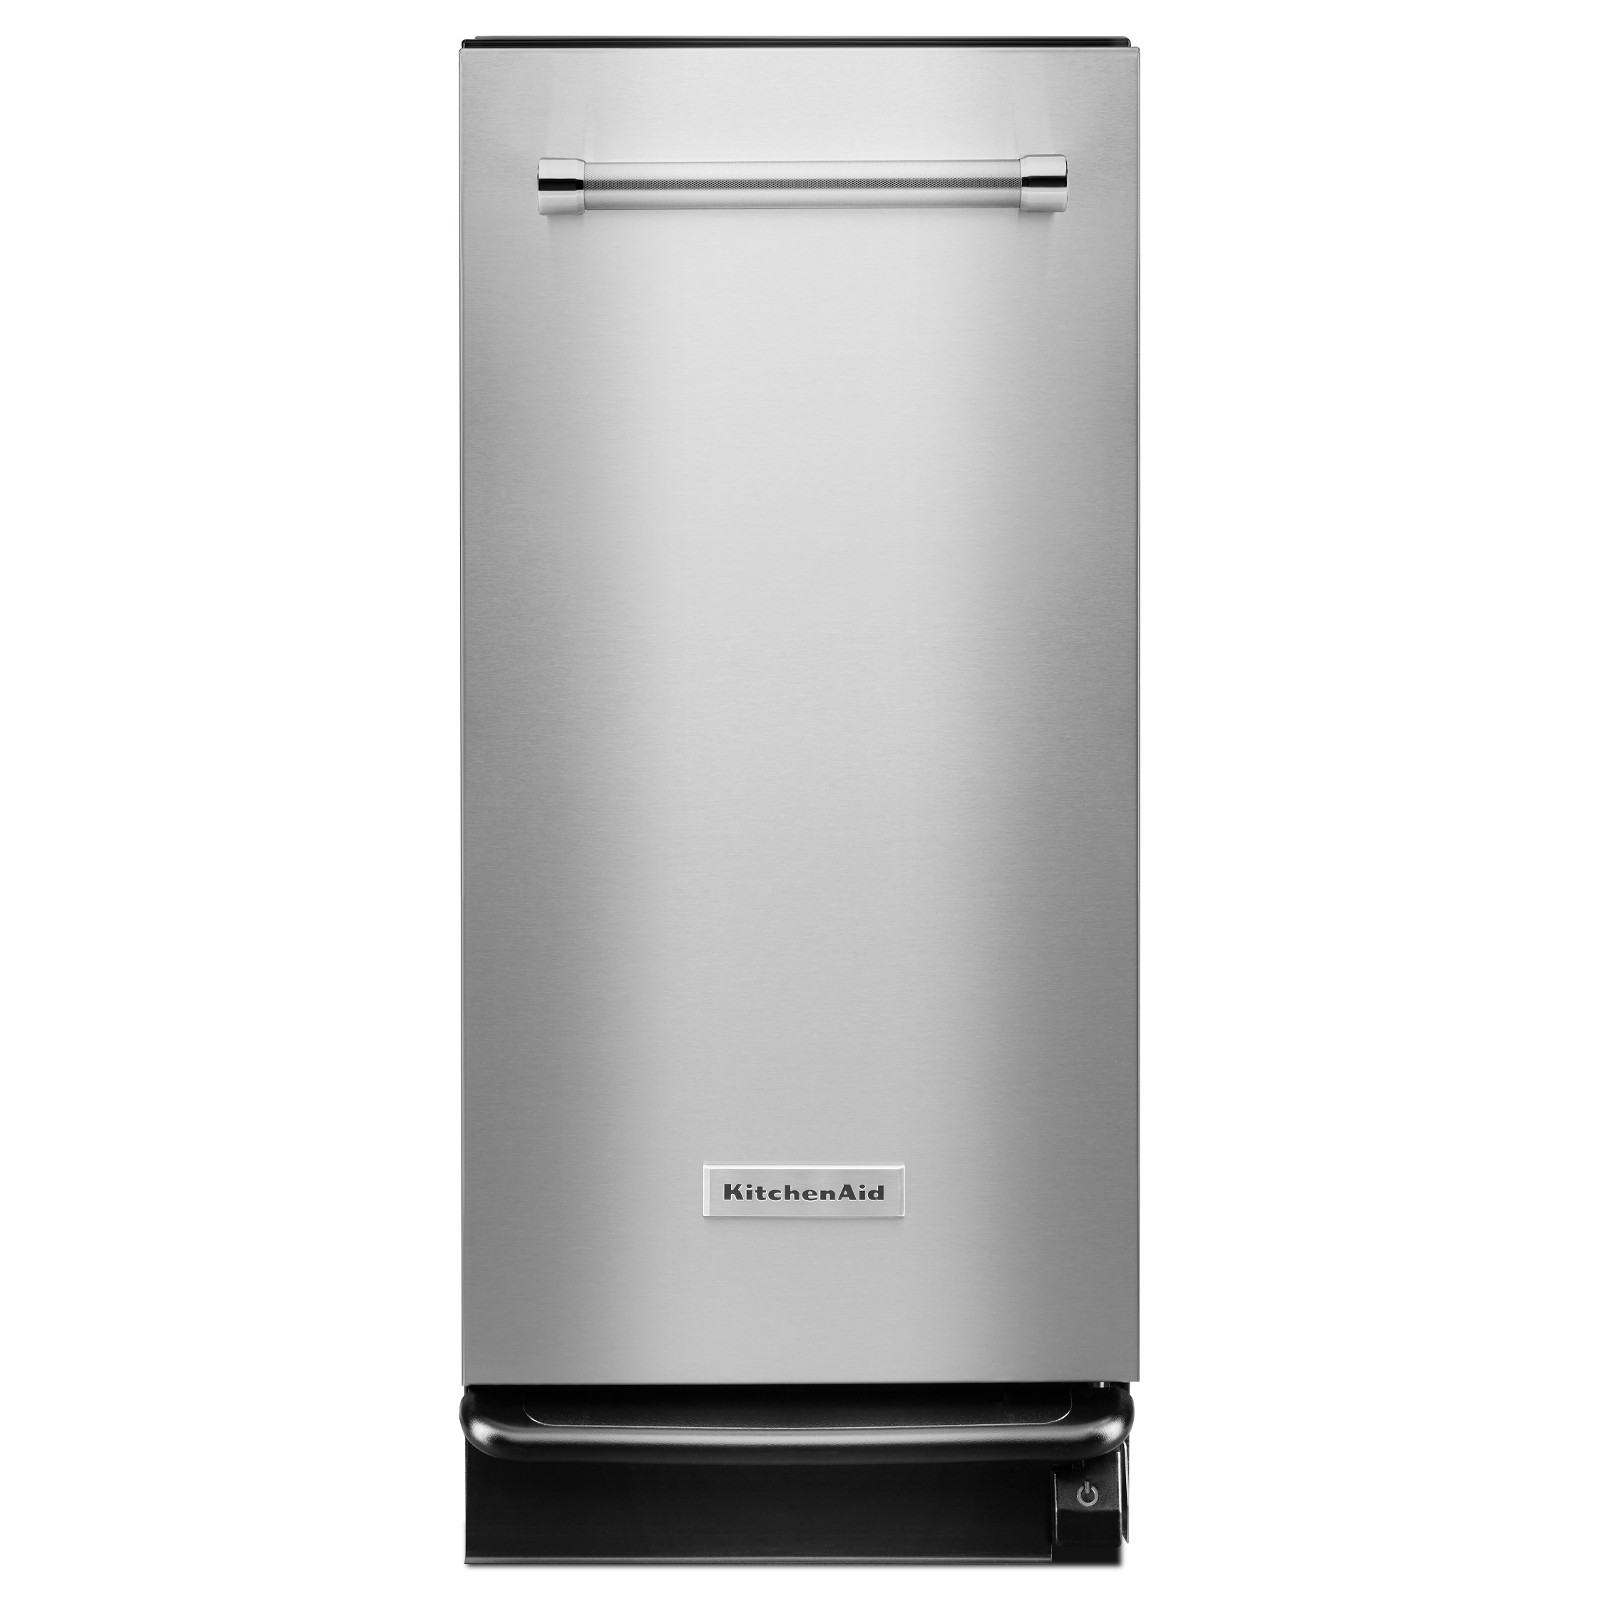 KitchenAid KTTS505ESS 1.4 cu. ft. Built-In Trash Compactor - Stainless Steel